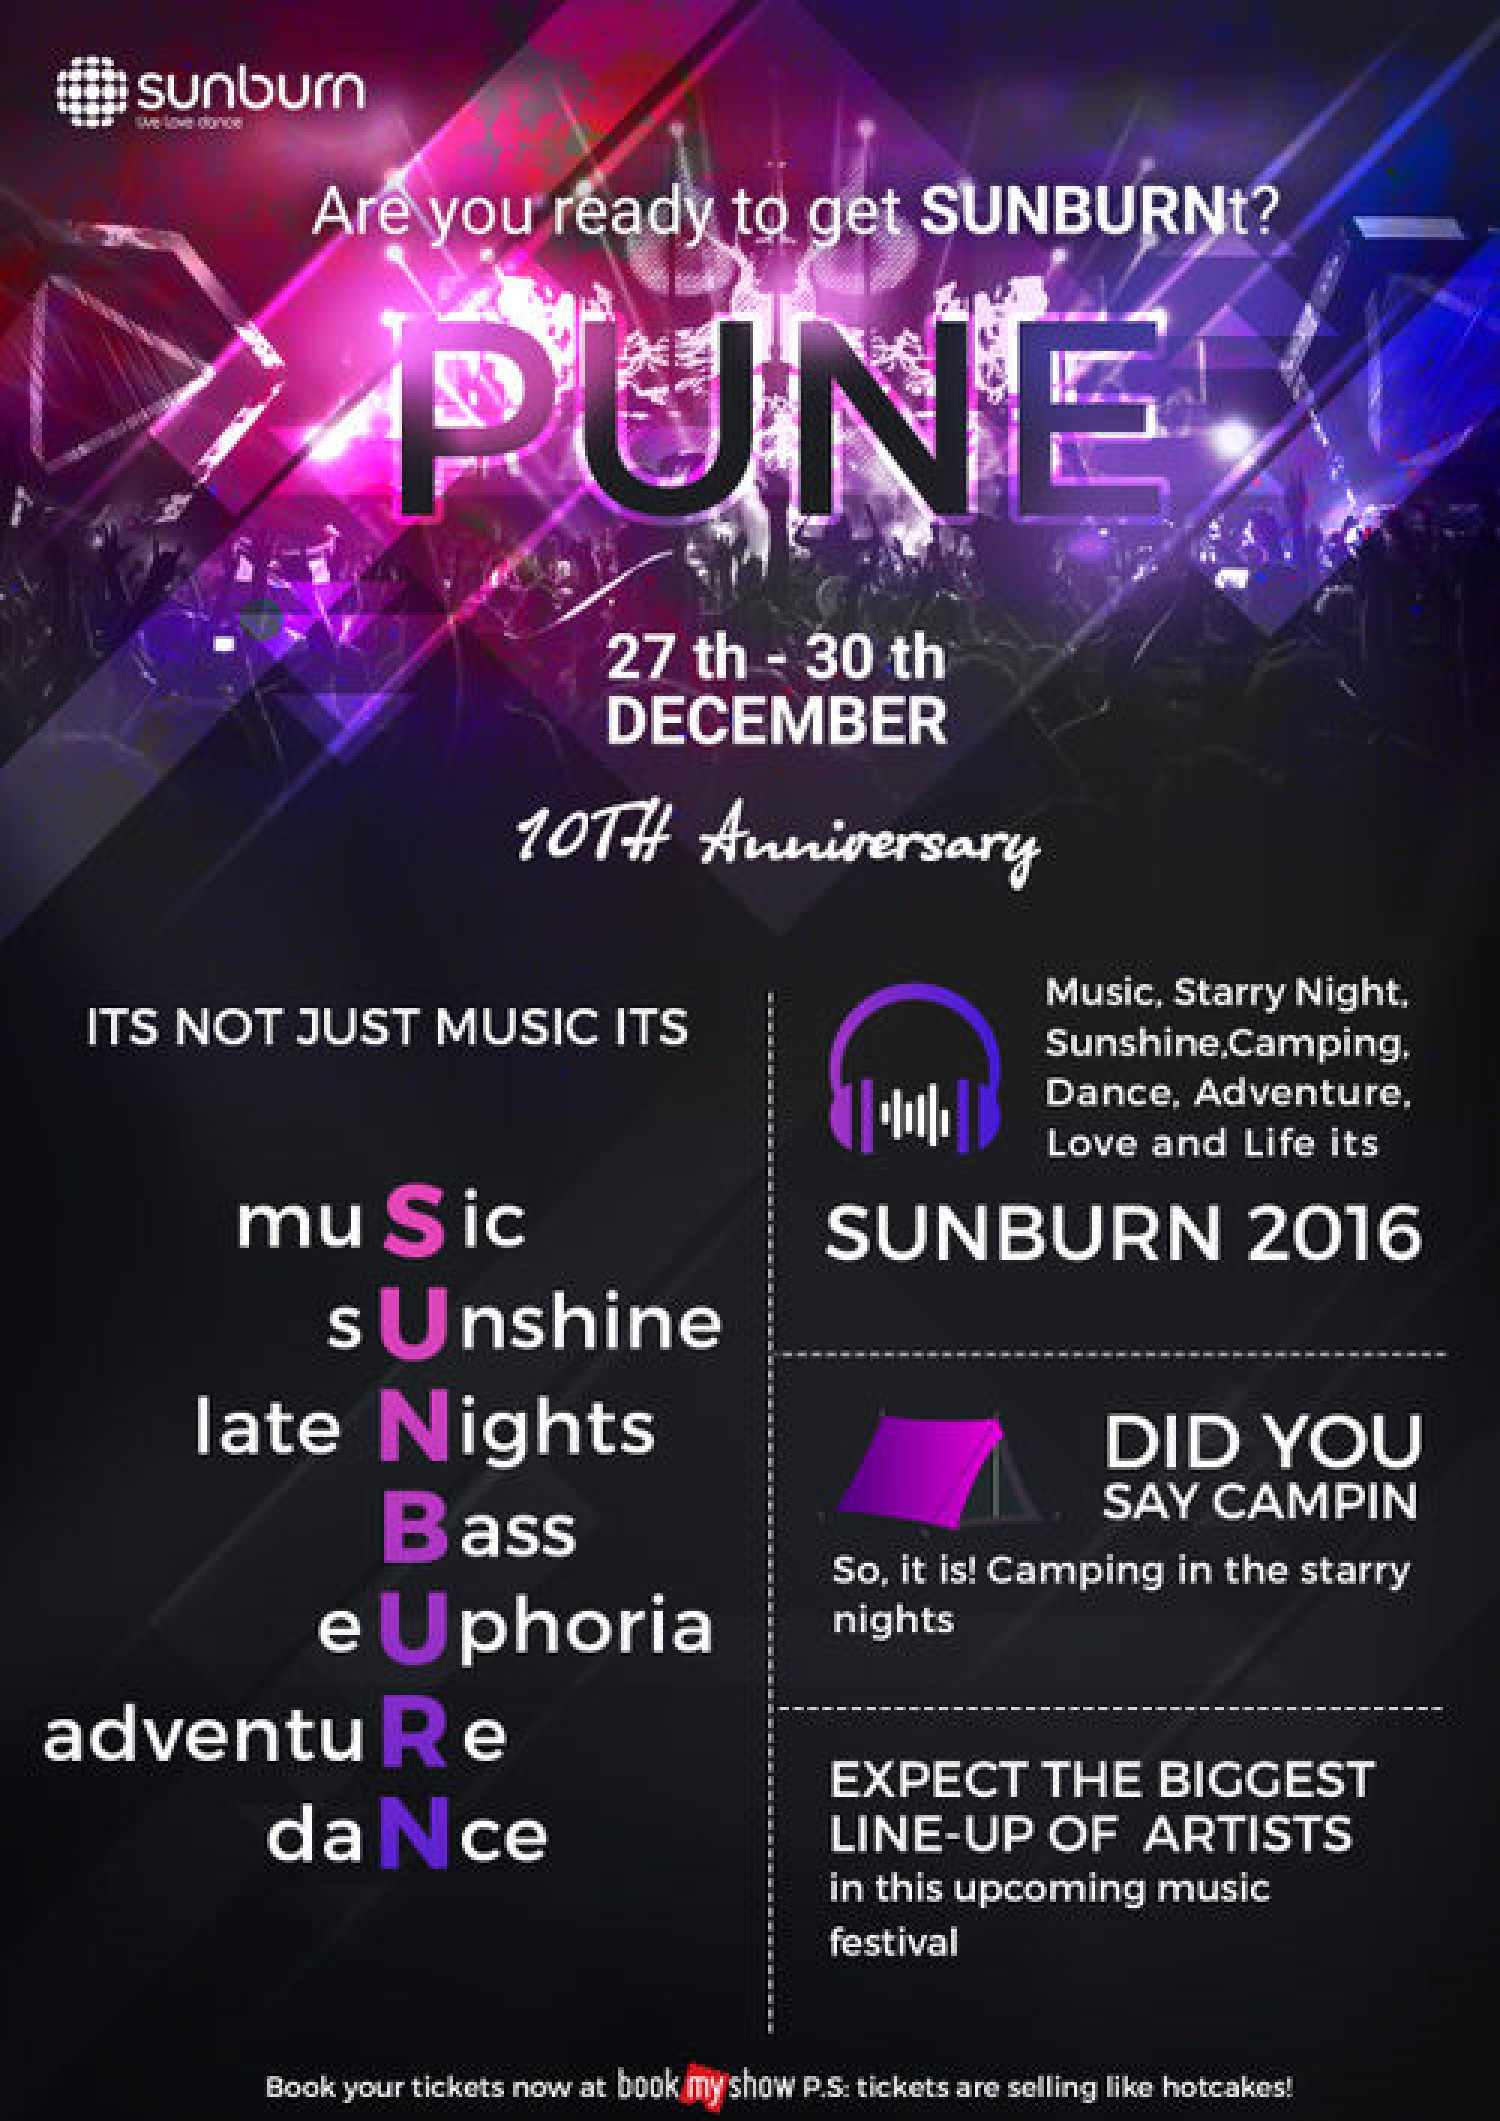 Sunburn 10 - Asia's Largest New Year Music Festival Infographic